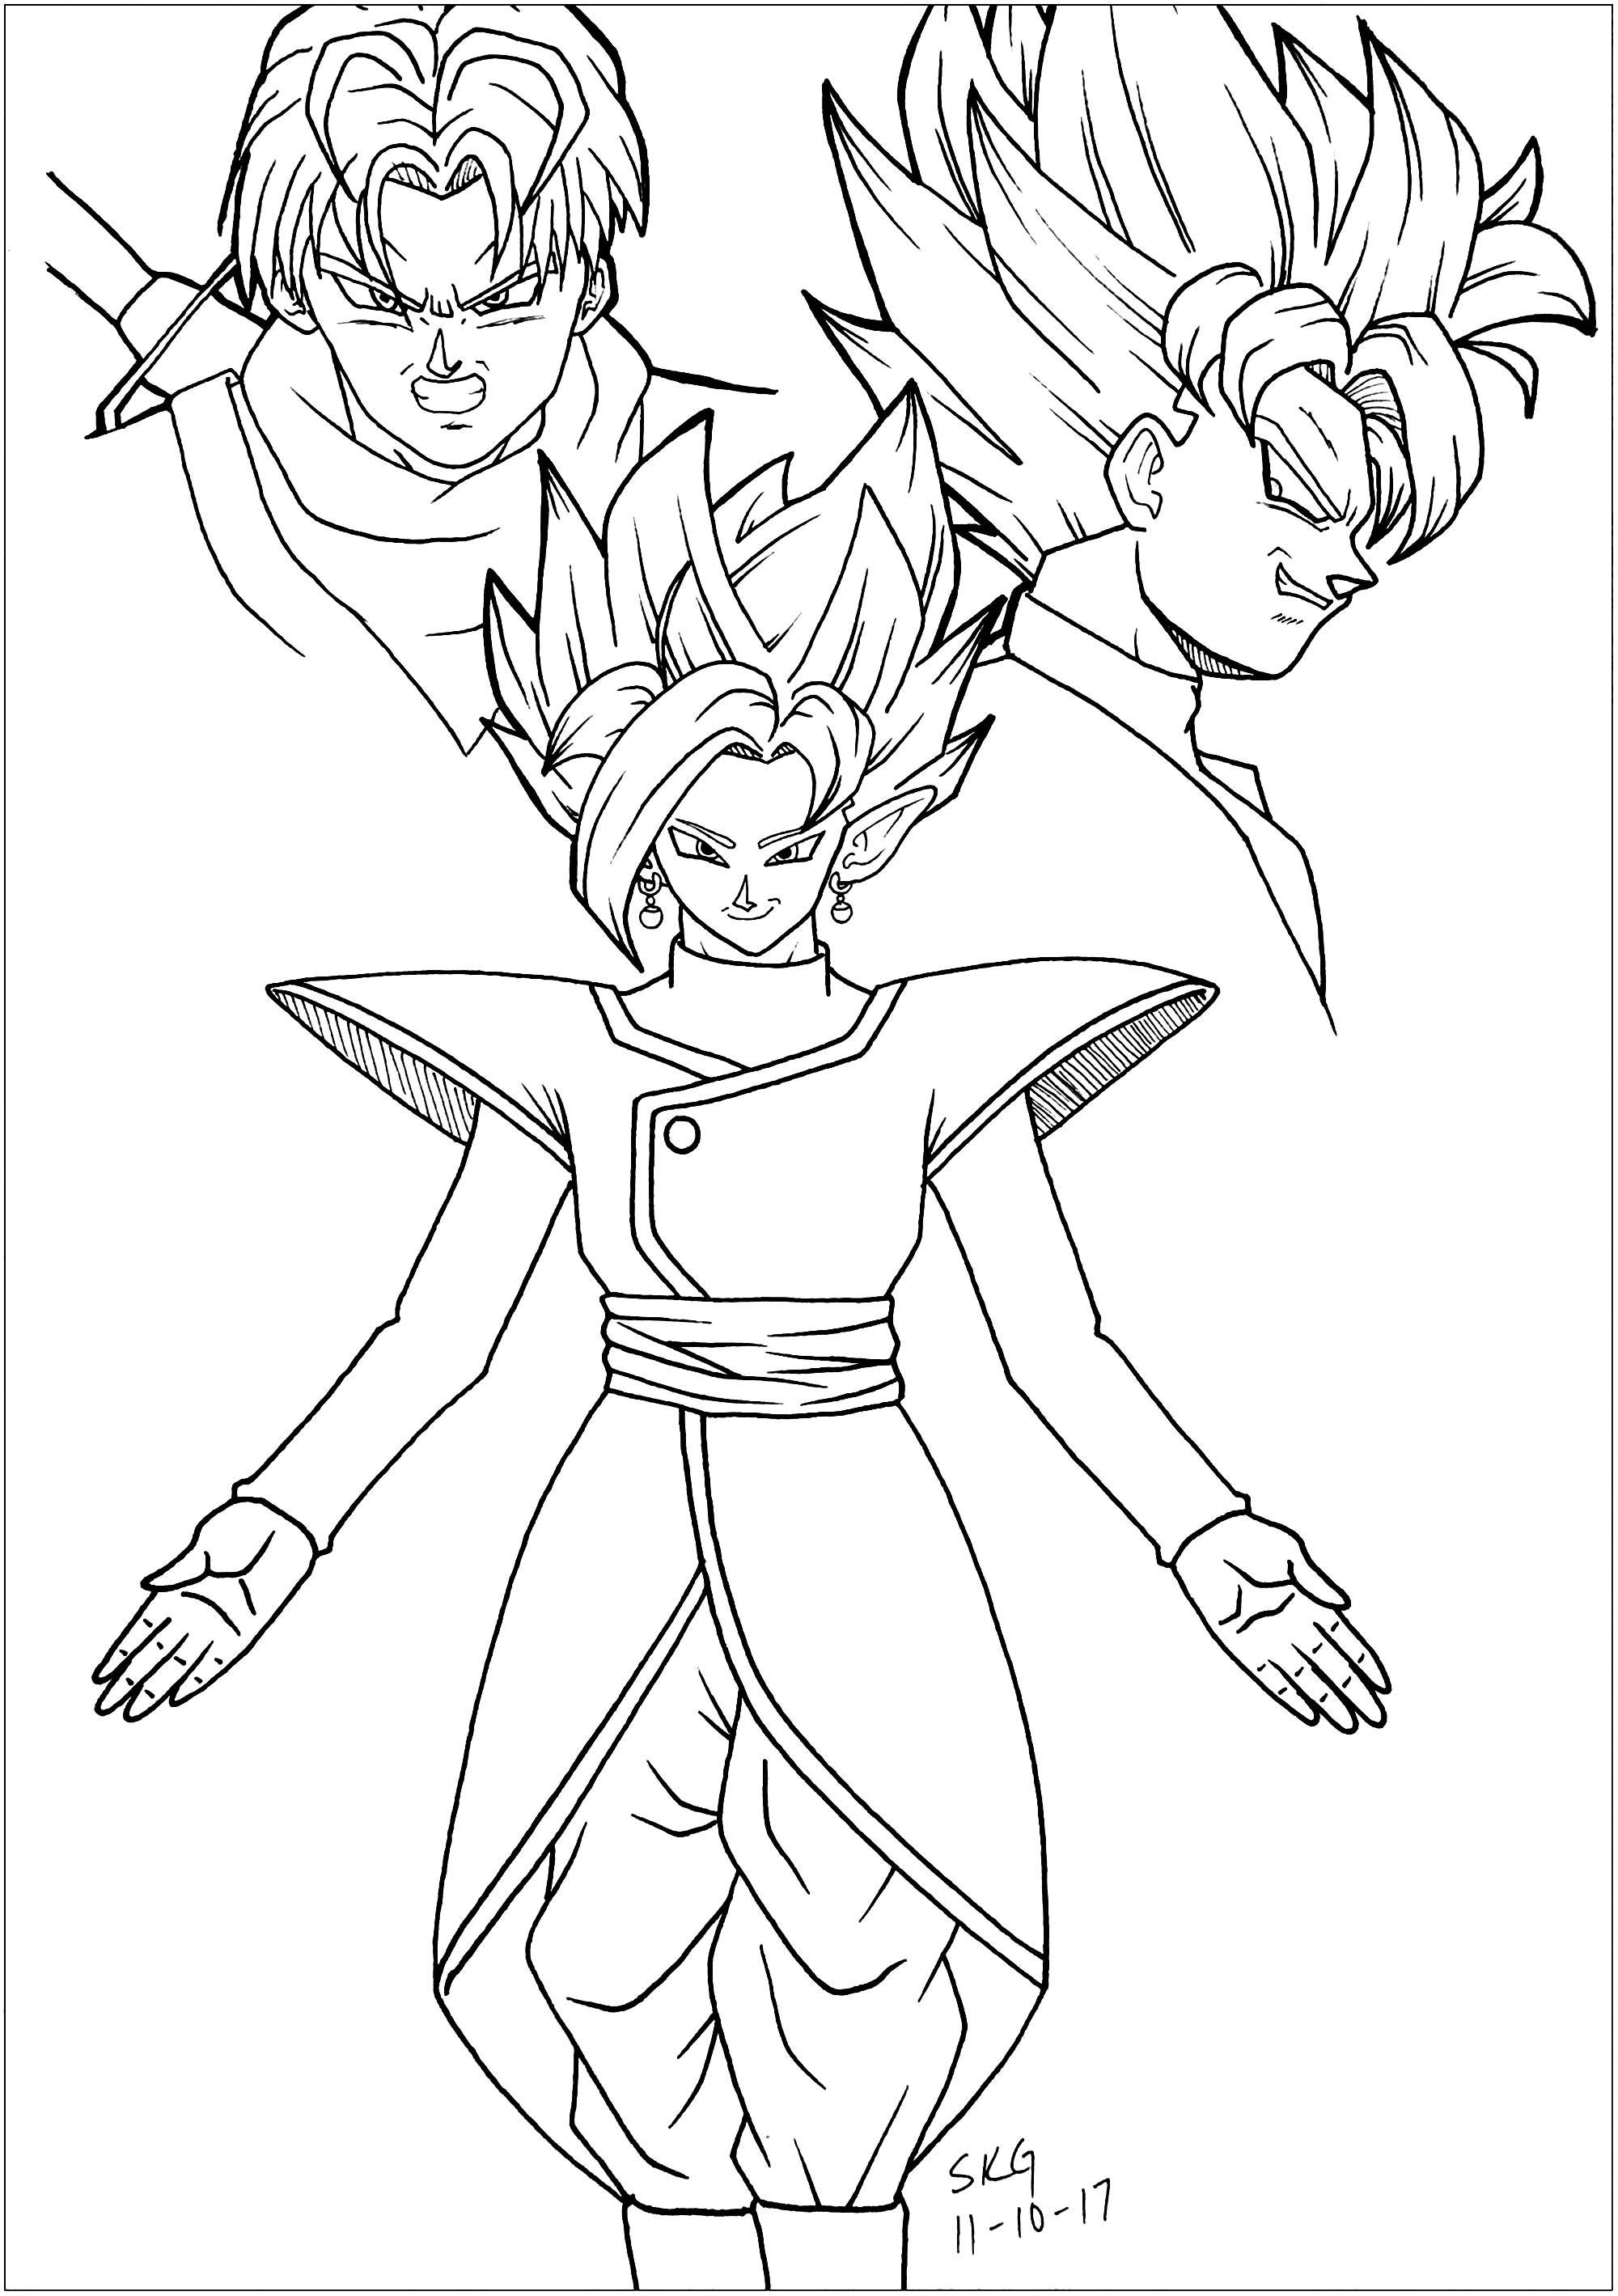 coloring pages dragonballz - photo#29